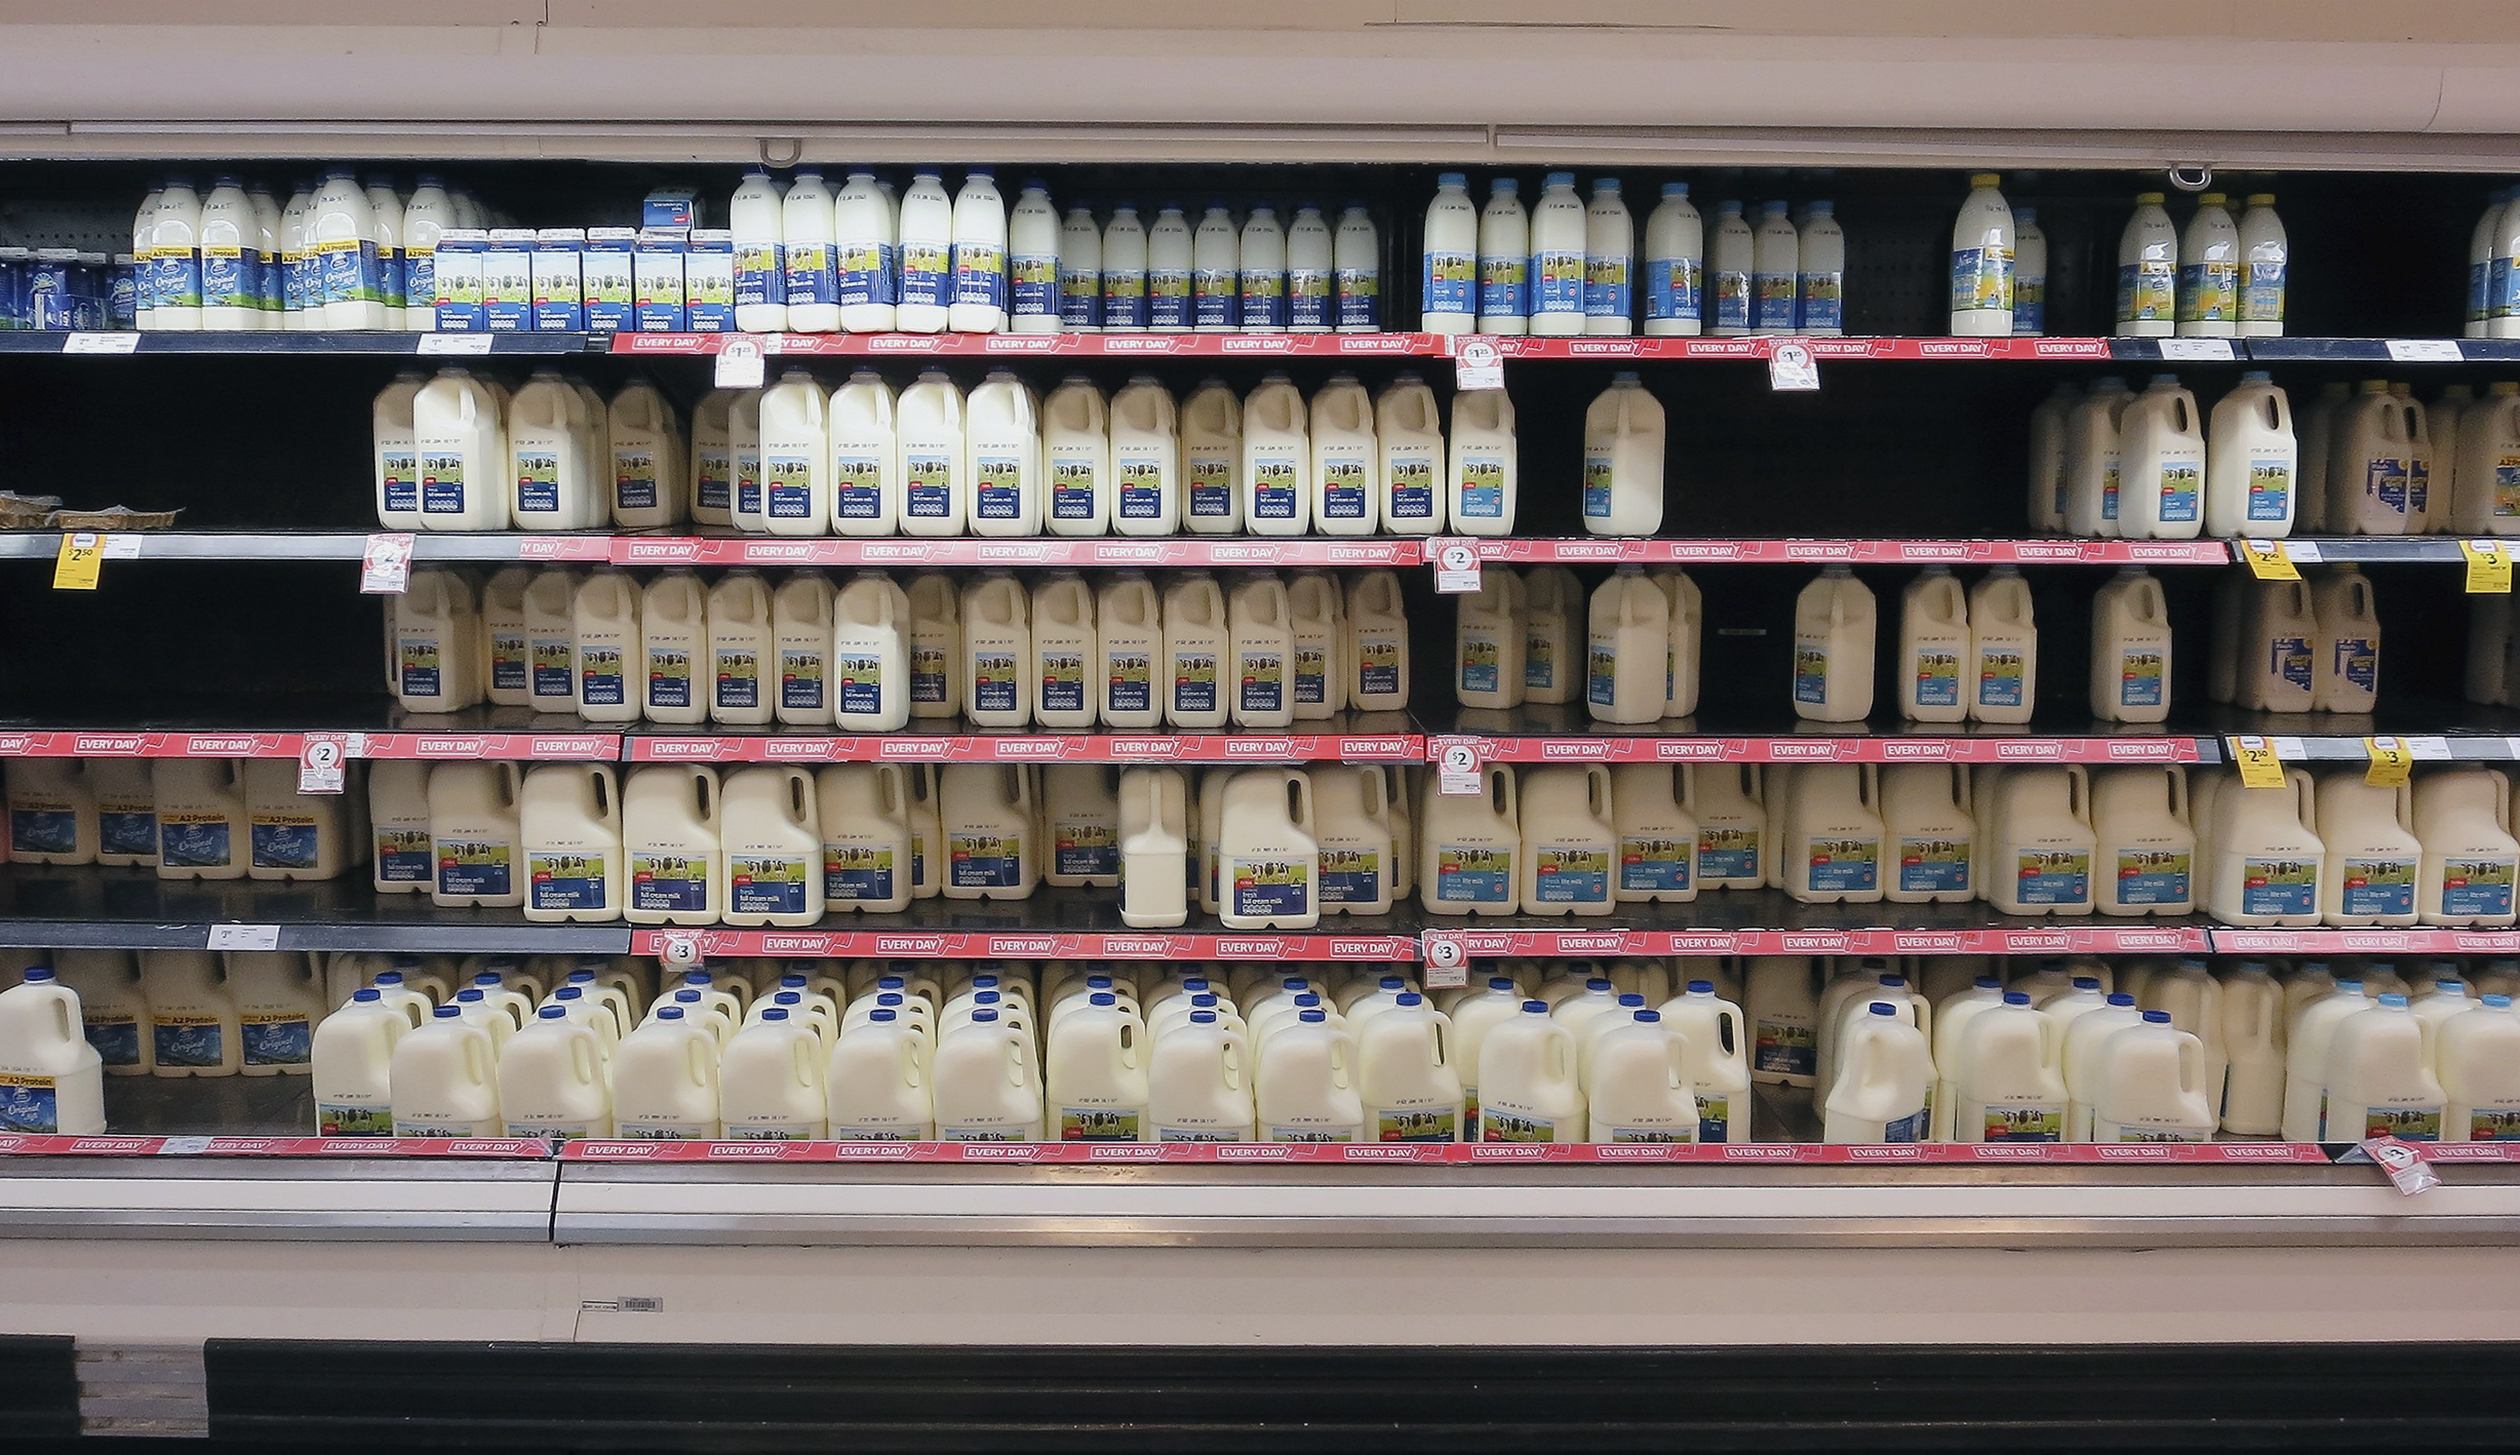 Branded Milk Stock Low As Consumers Avoid Home Brands